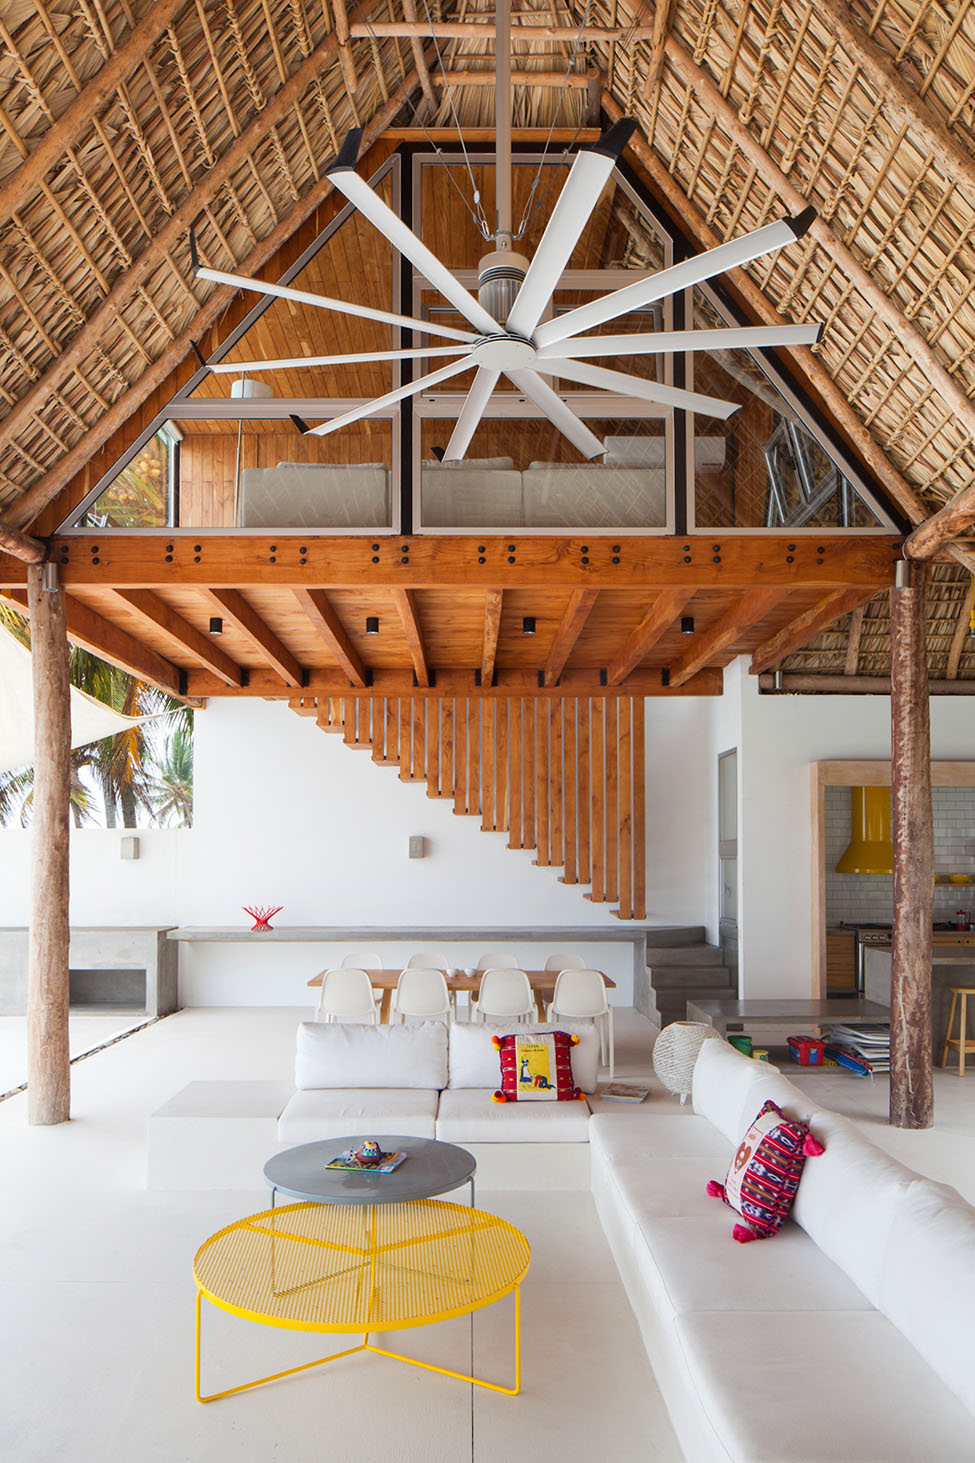 Interior Design Home Library: Beach Bungalow Casa Azul In San Salvador